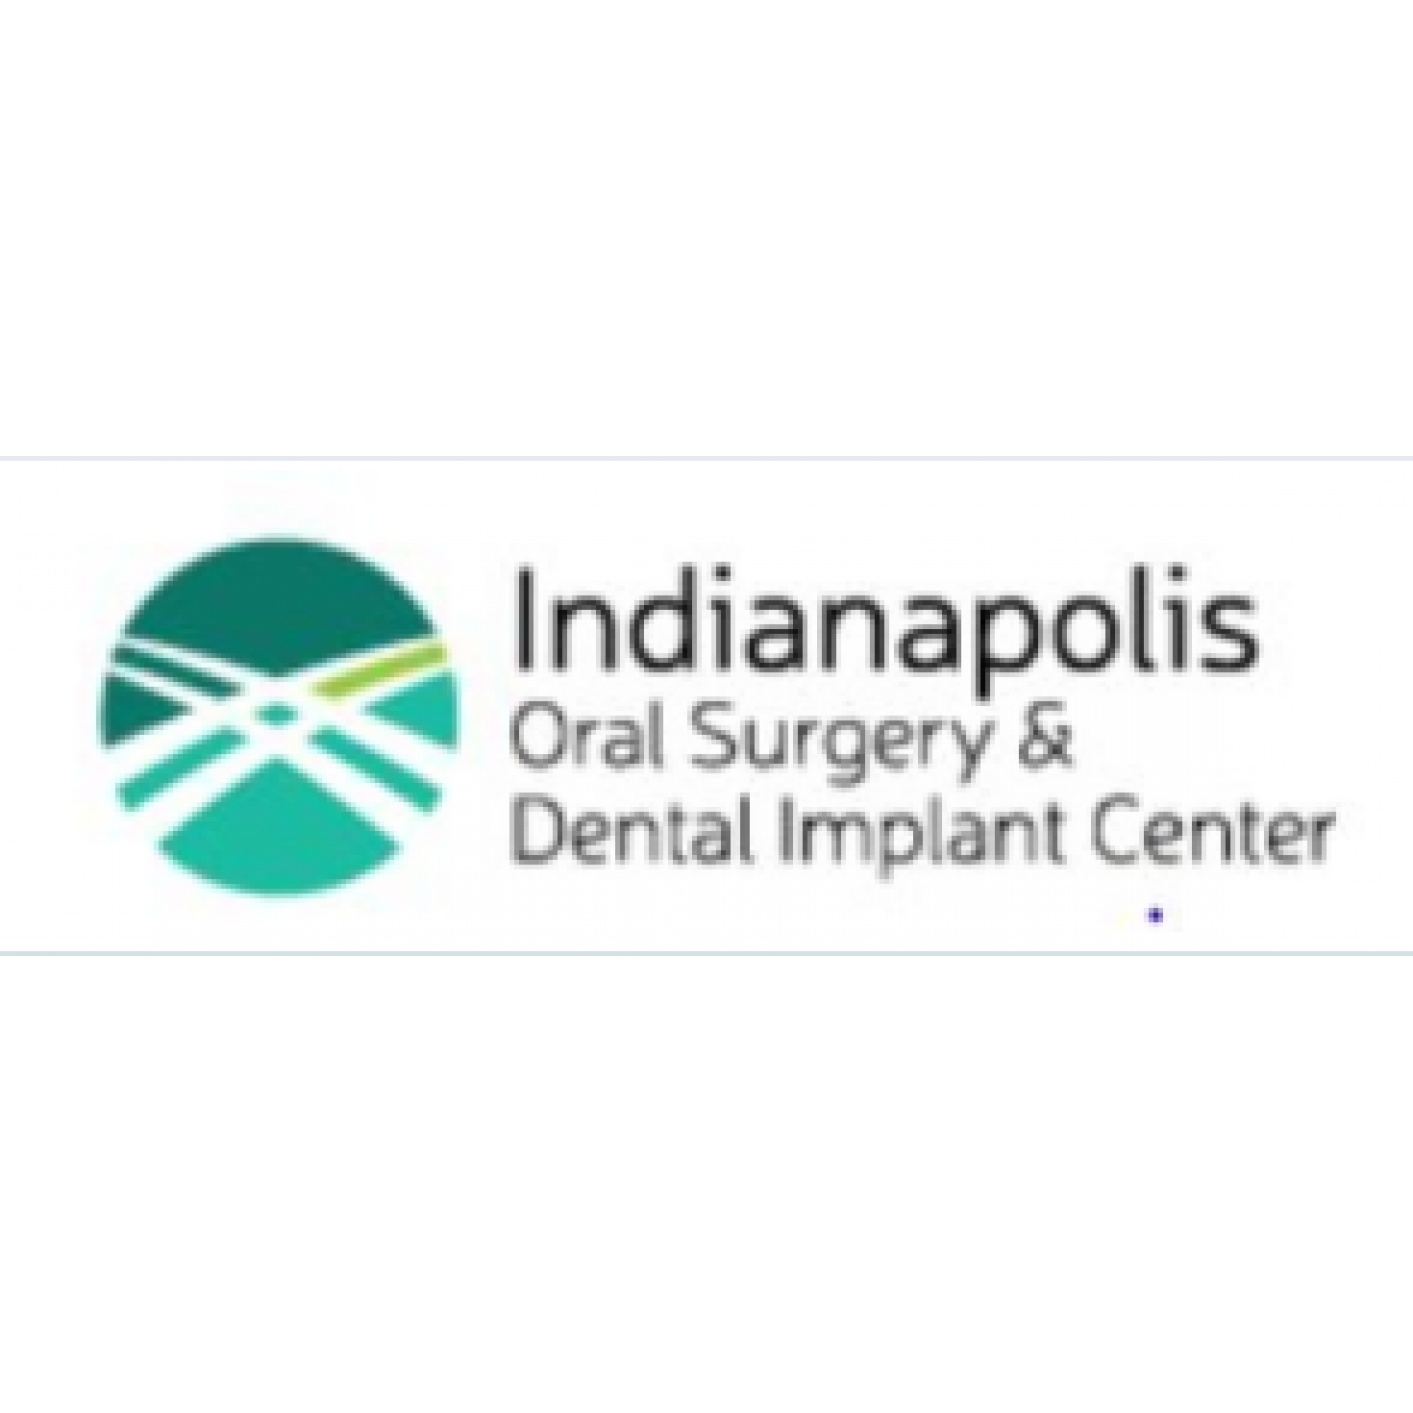 Indianapolis Oral Surgery & Dental Implant Center image 1